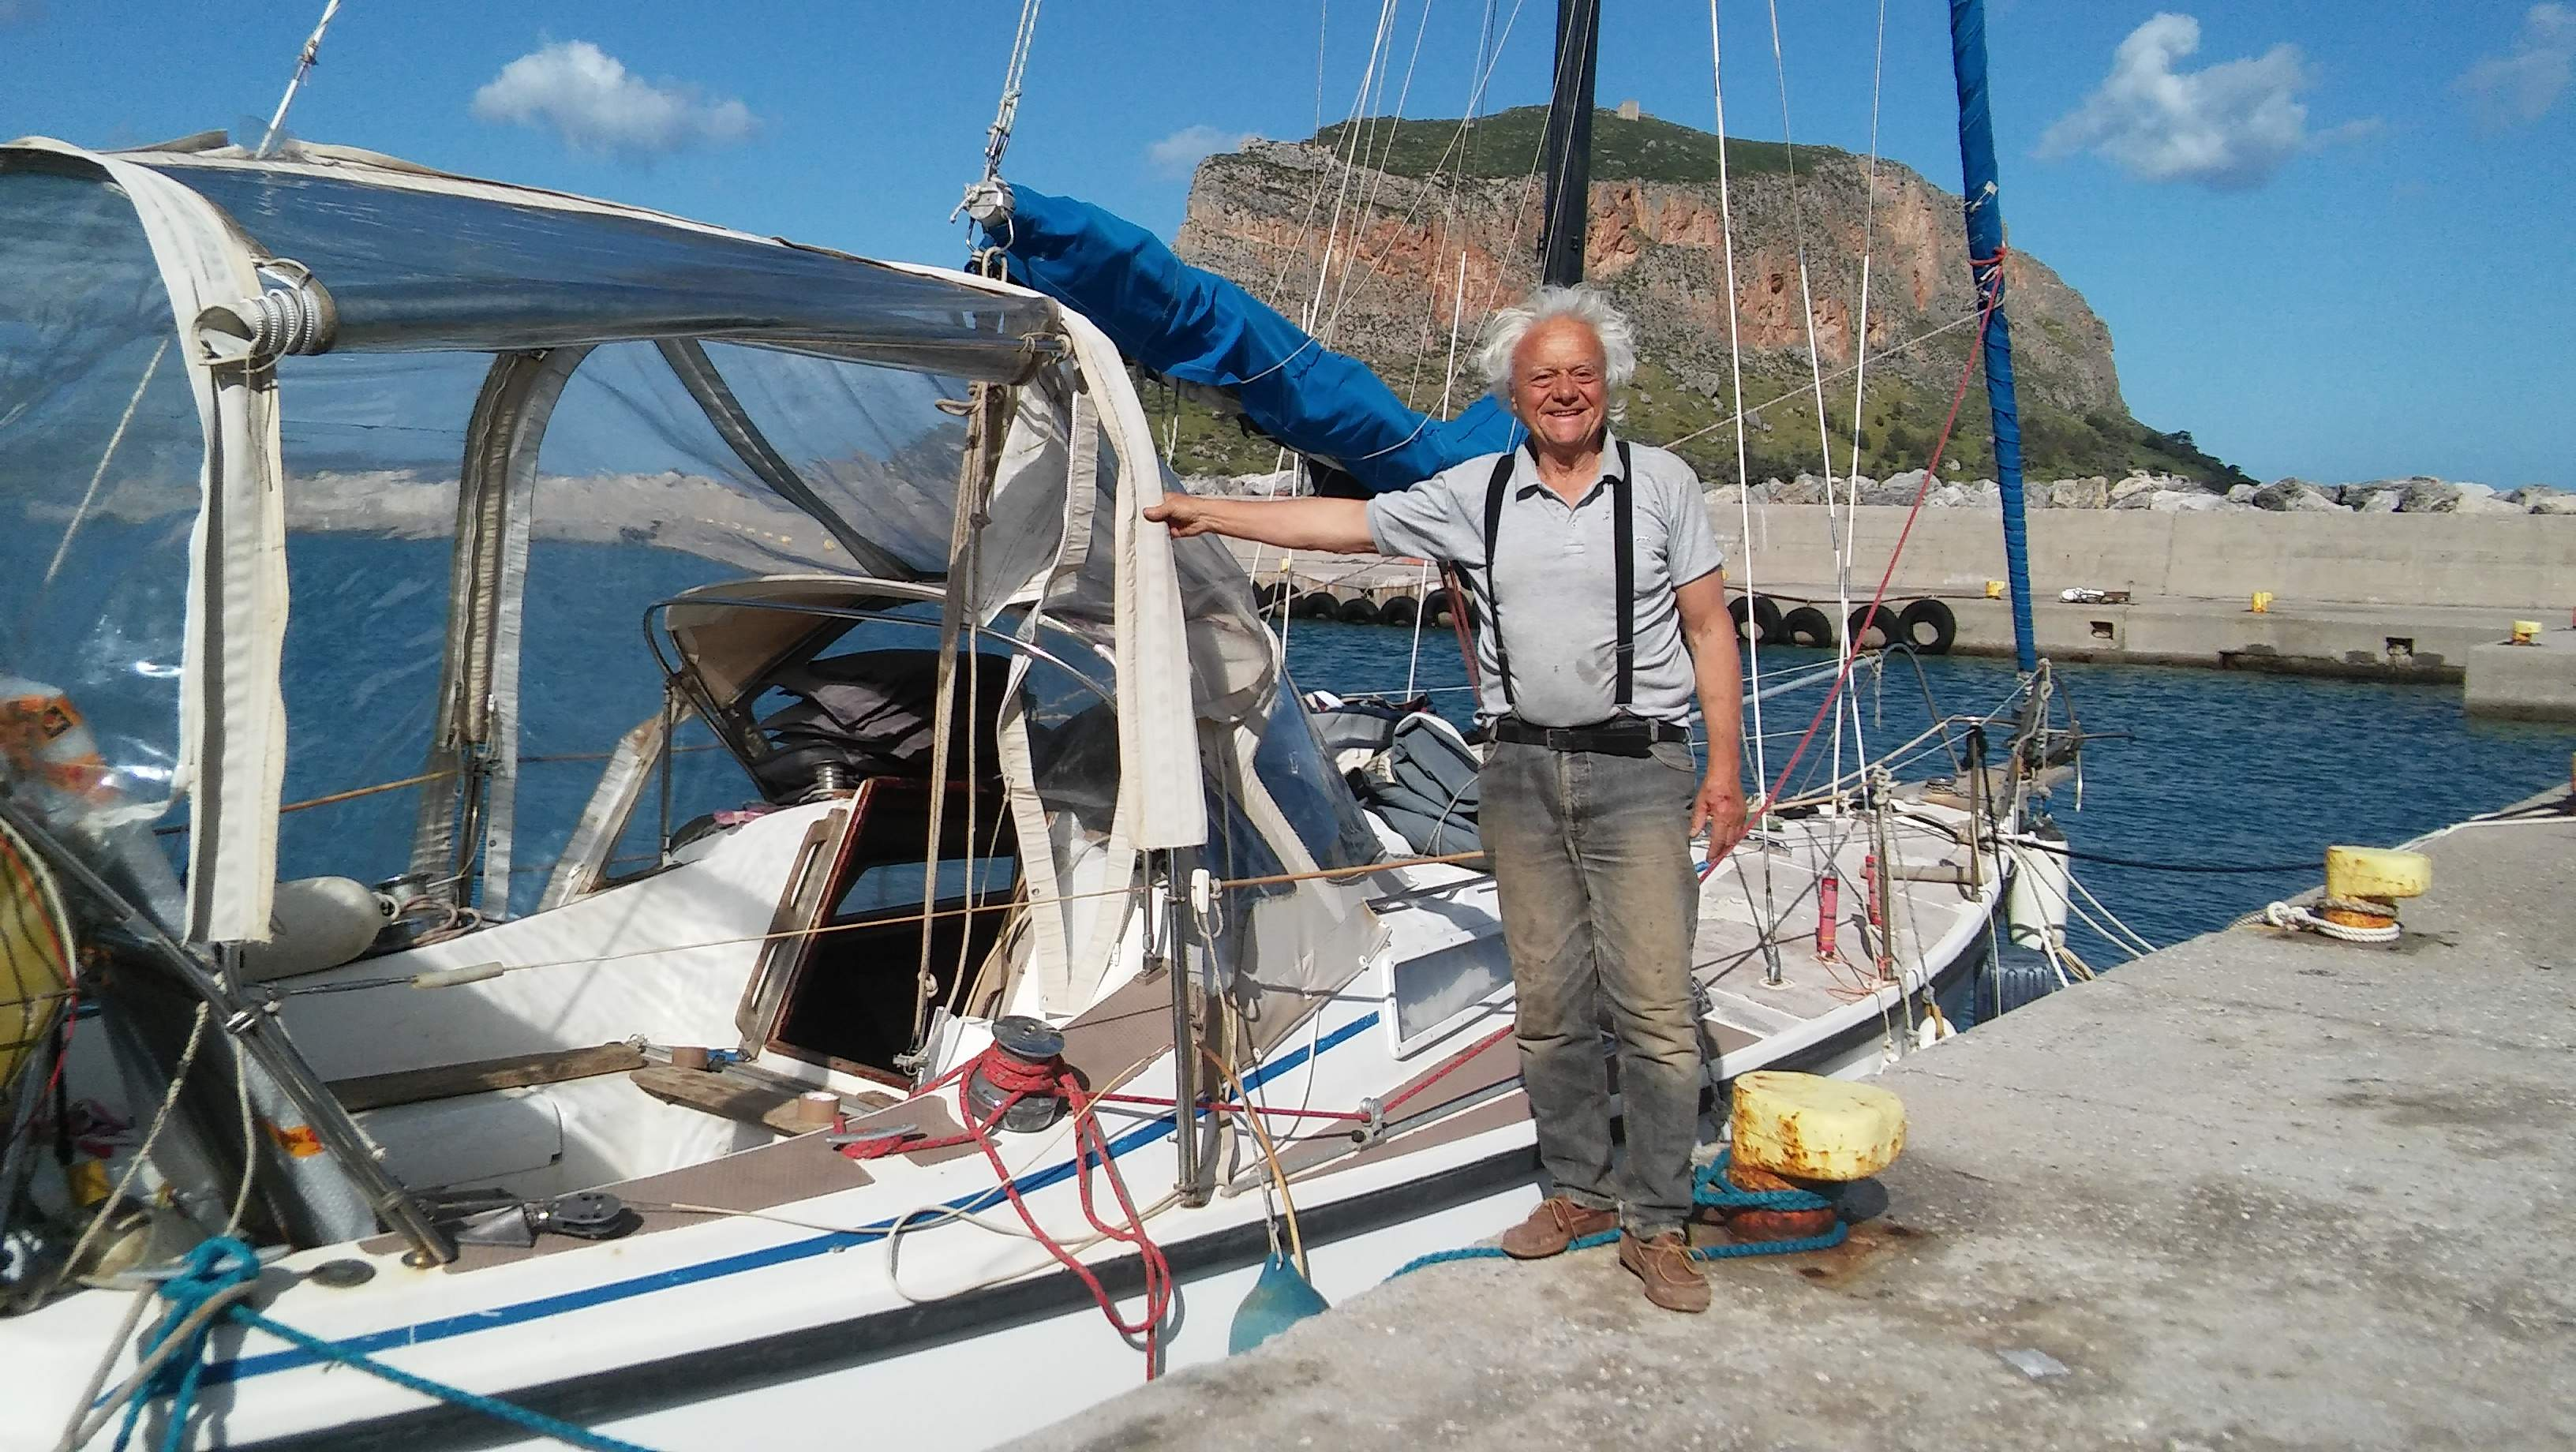 MARCH 23 TO 27 LOADING THE OLIVE OIL AND SAILING TO ITEA